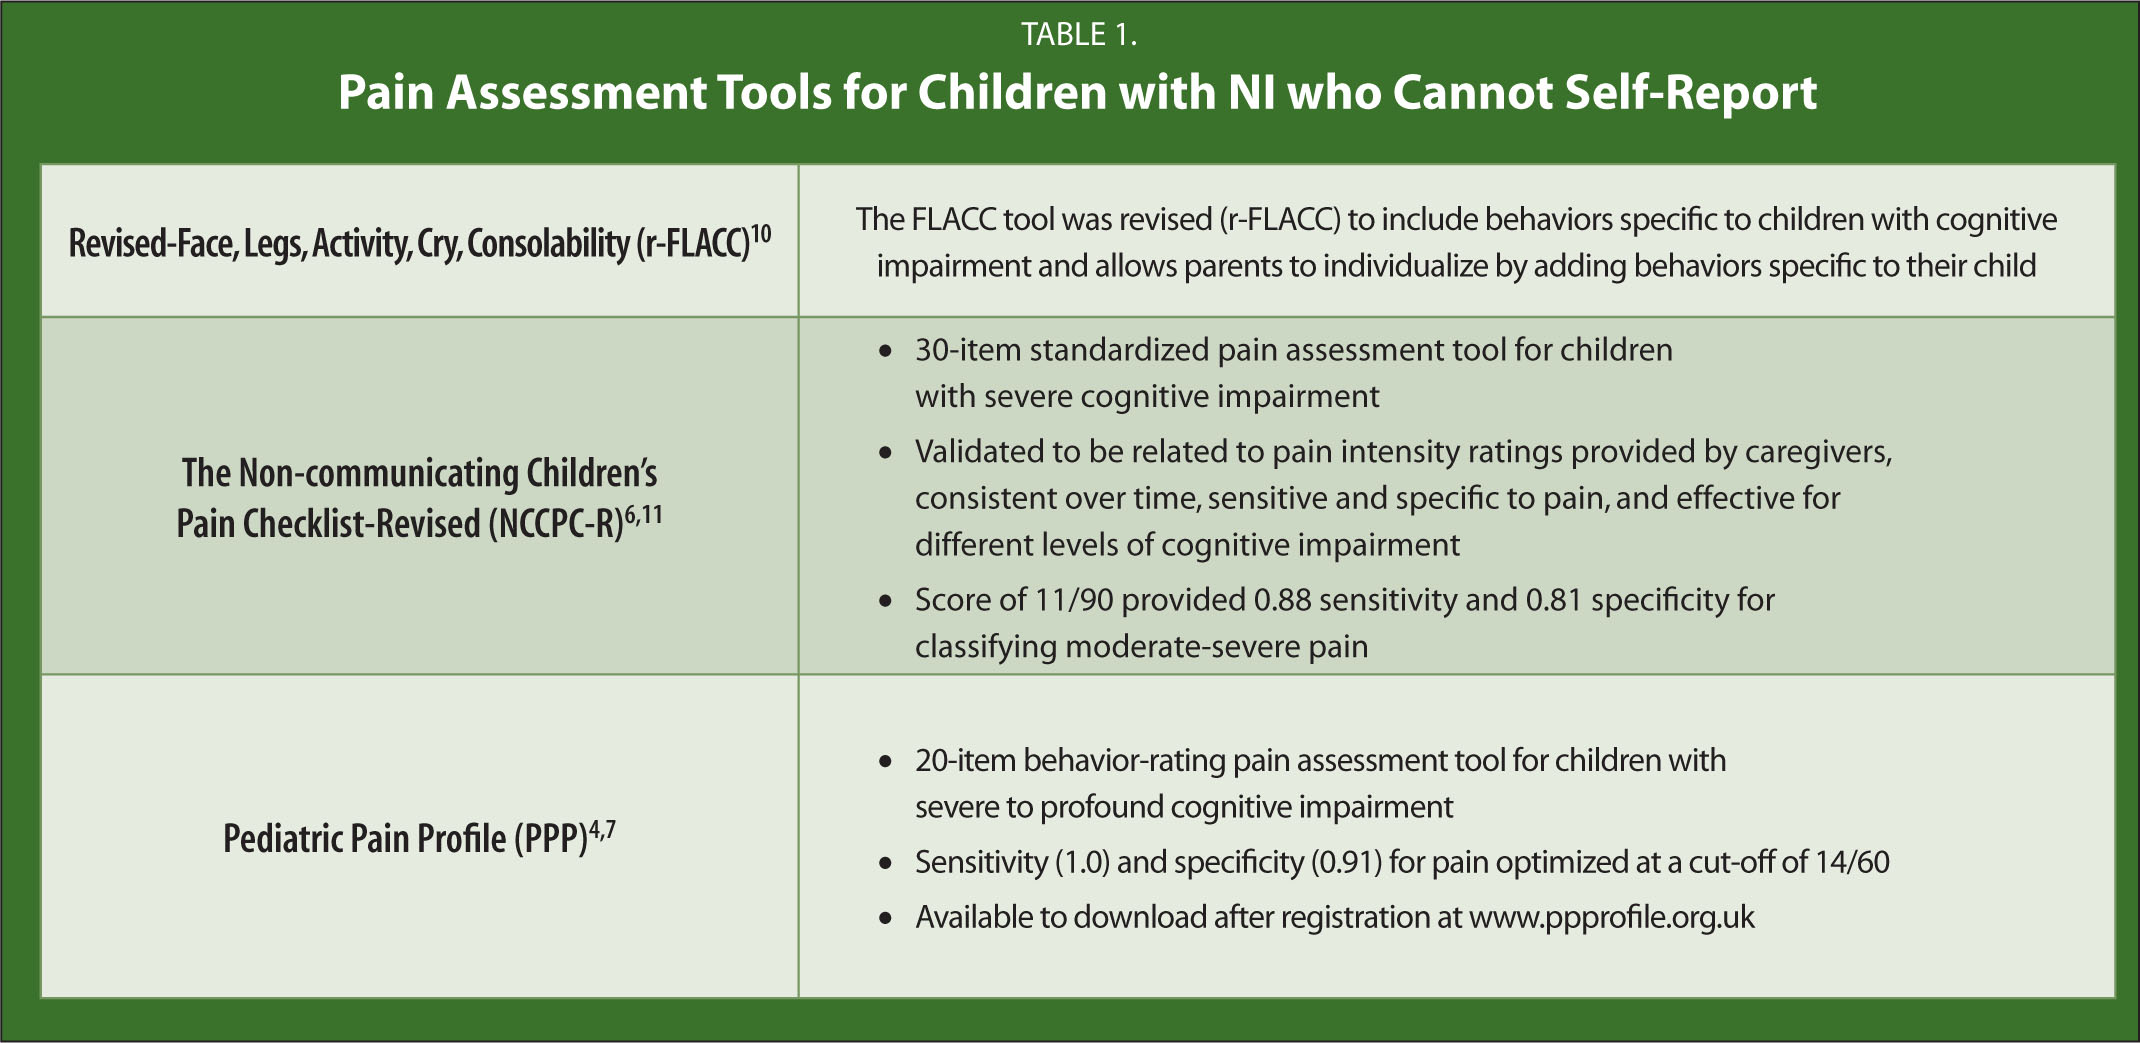 Pain Assessment Tools for Children with NI Who Cannot Self-Report